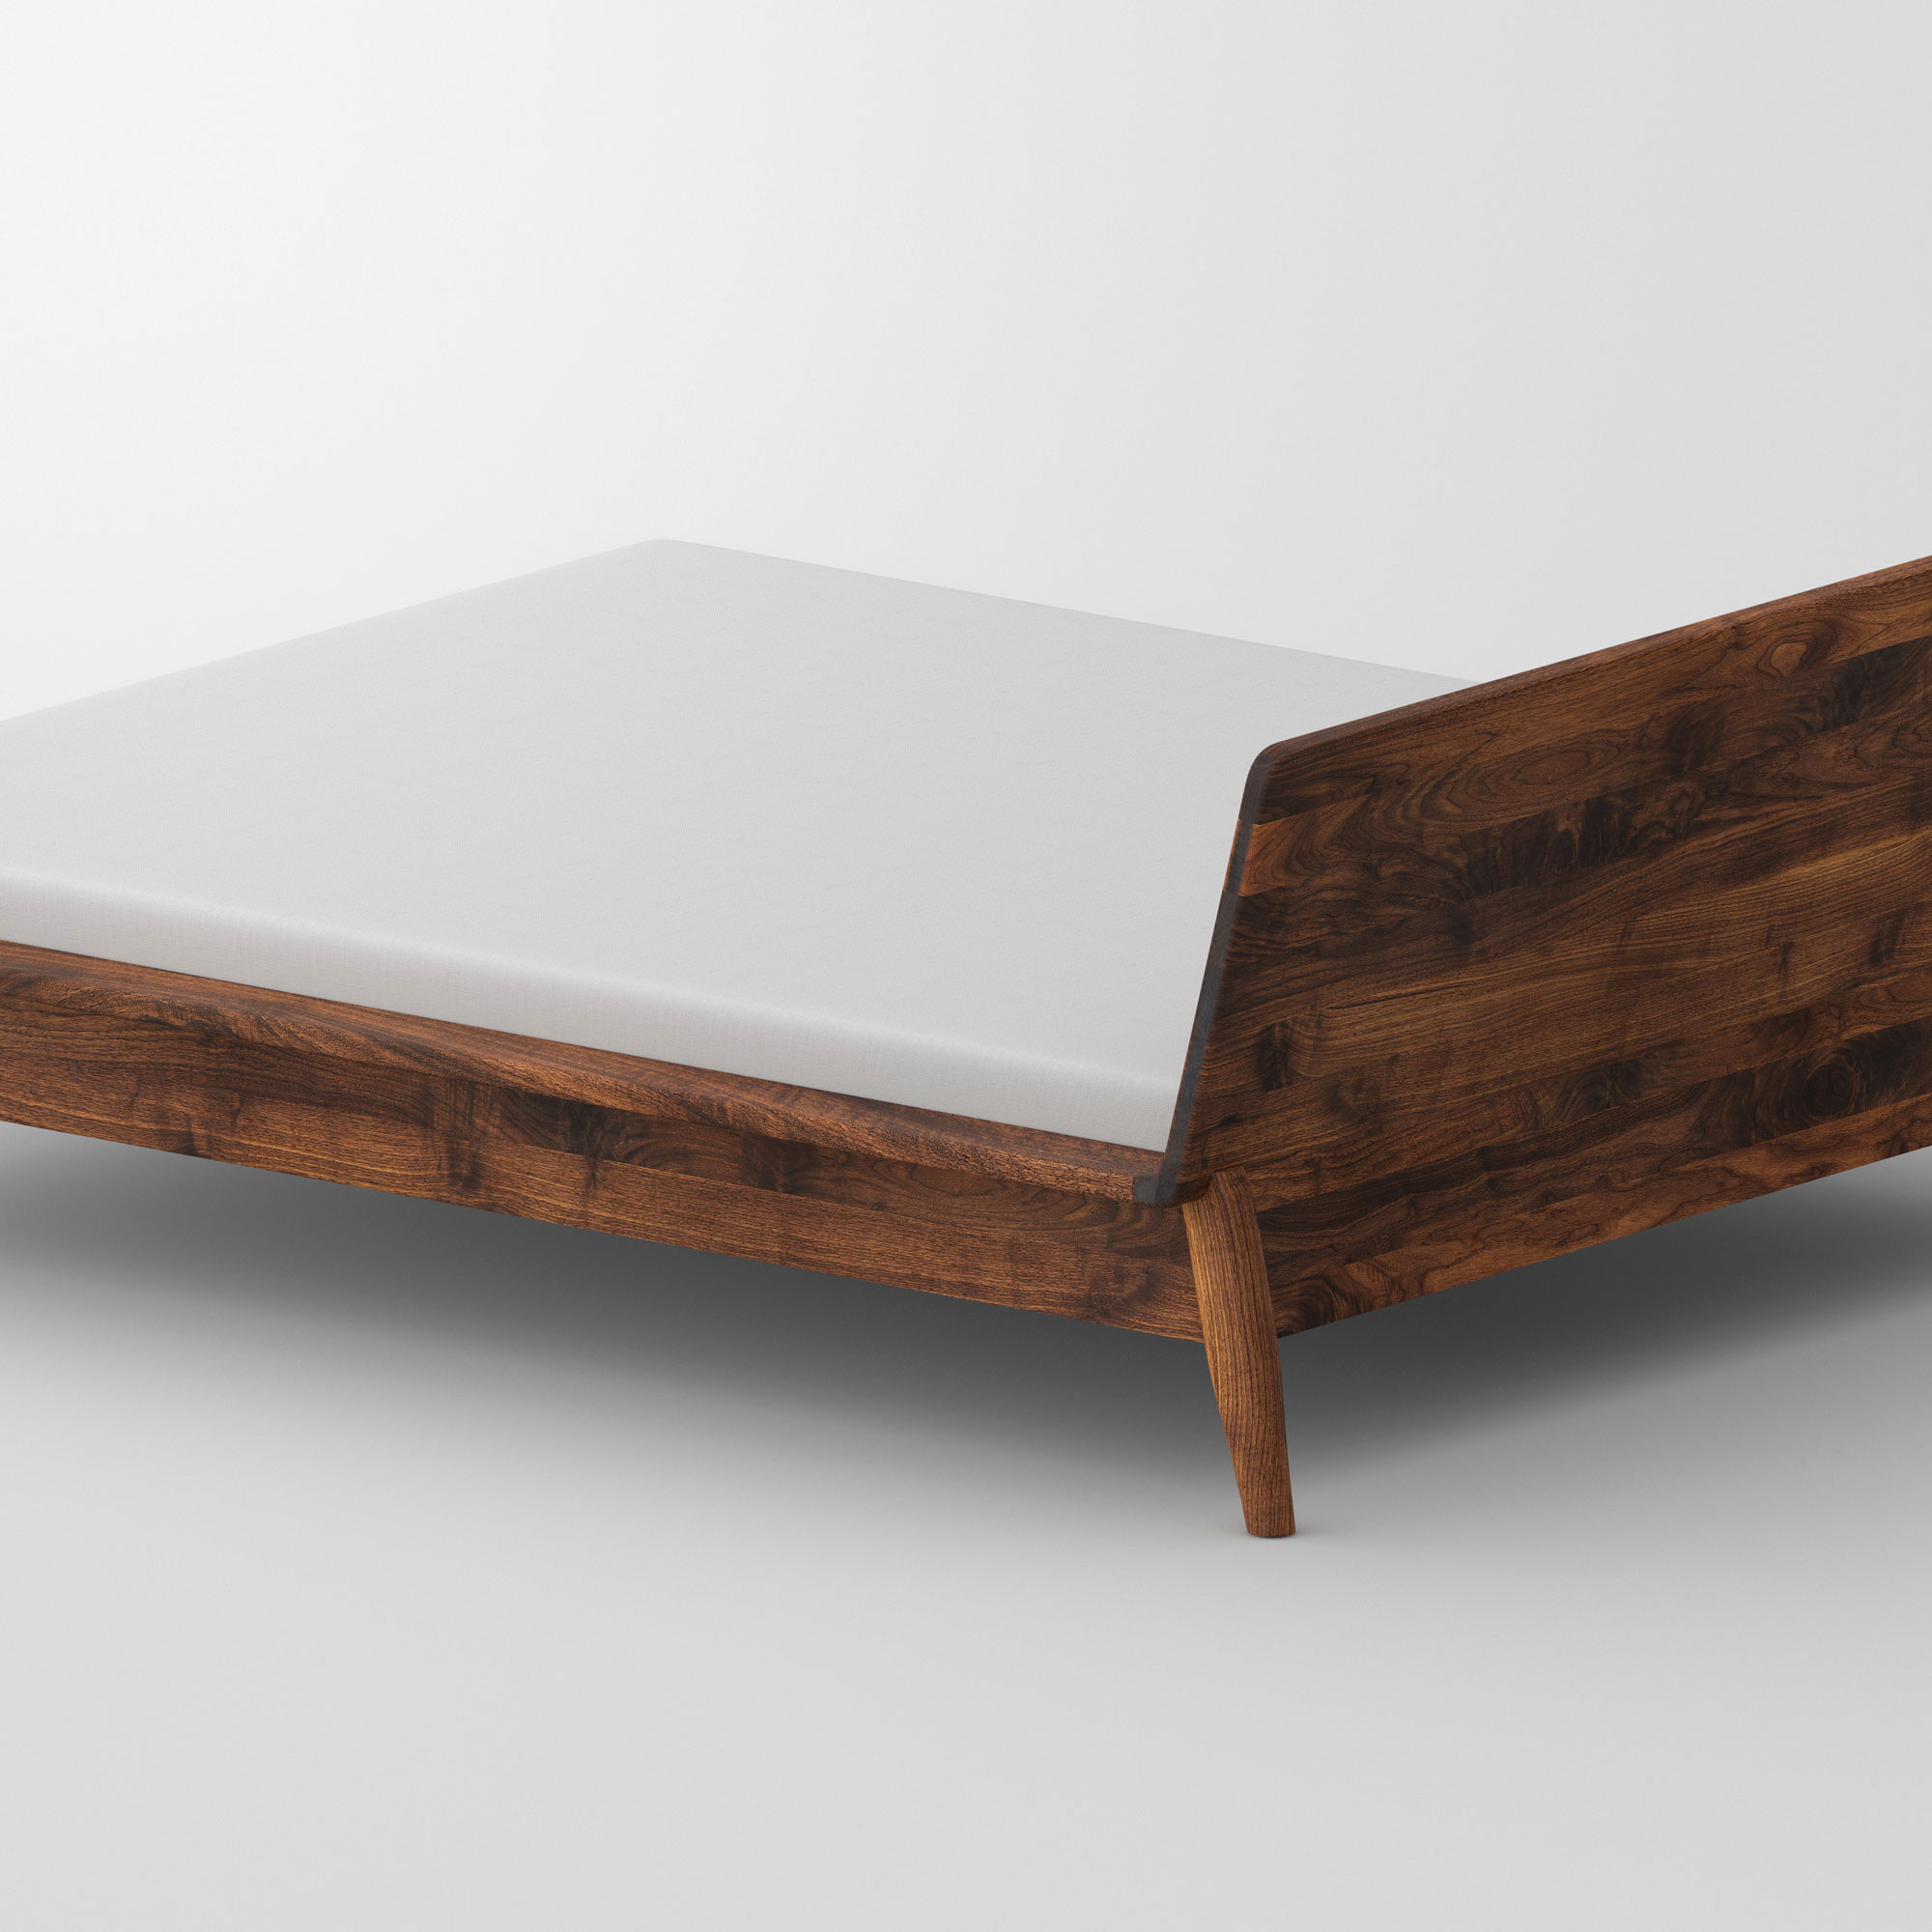 Designer Bed AETAS cam4 custom made in solid wood by vitamin design